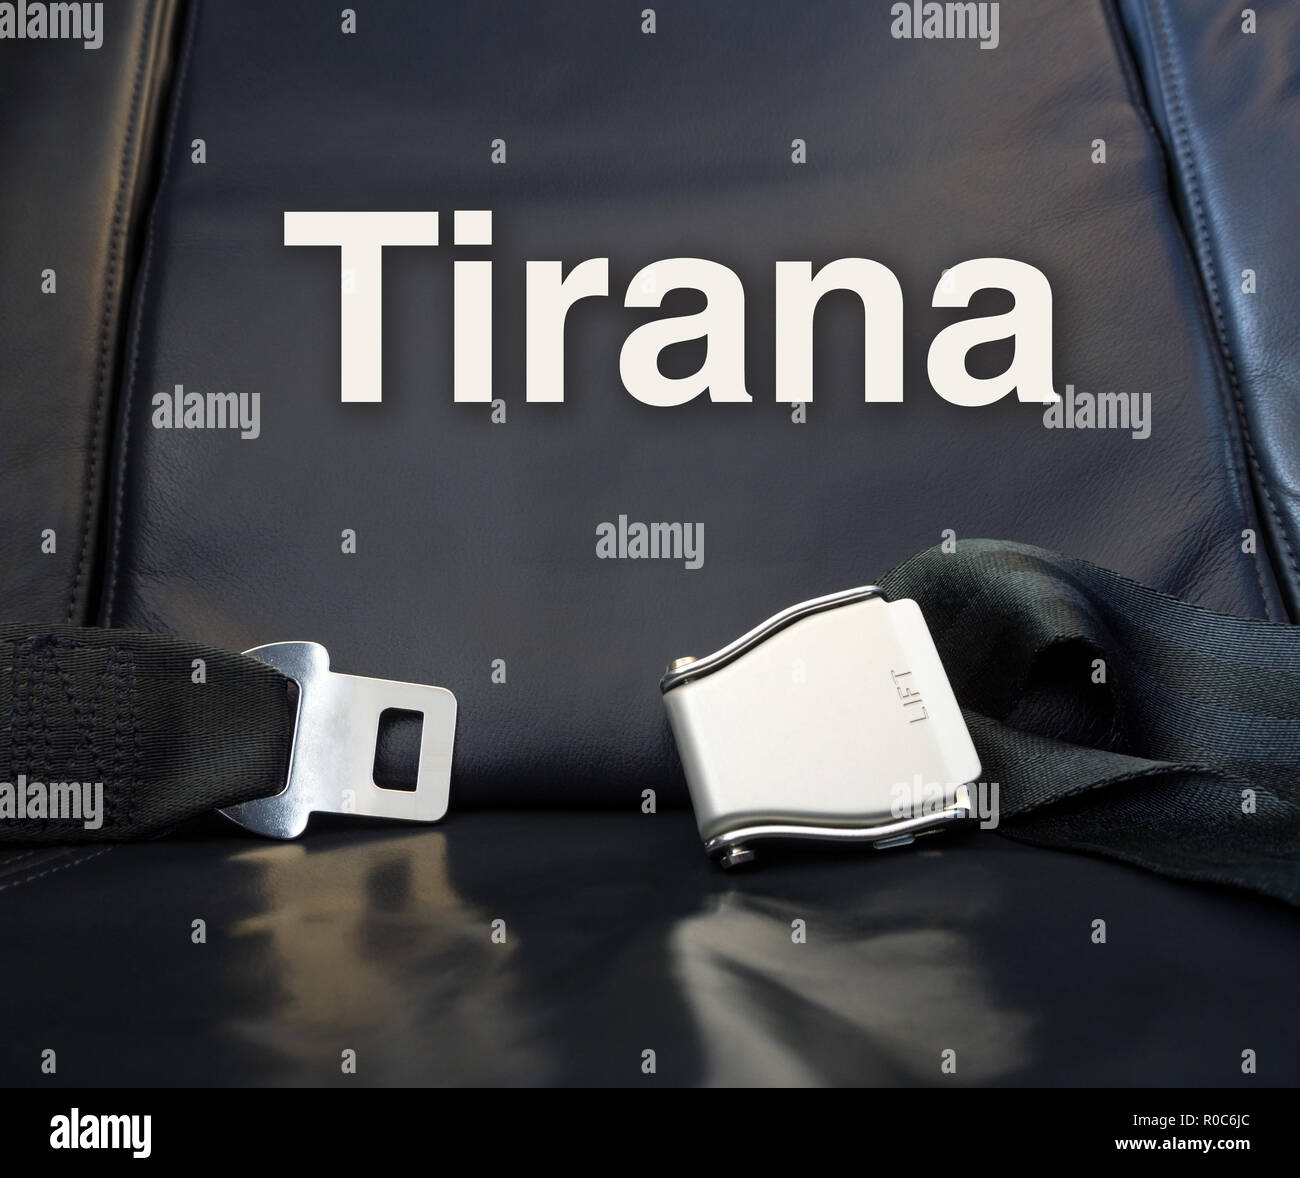 Welcome to Tirana! Let's the journey begin! Airplane comfortable leather seat awaiting passenger for fly, travel, journey, tour, trip, voyage. - Stock Image